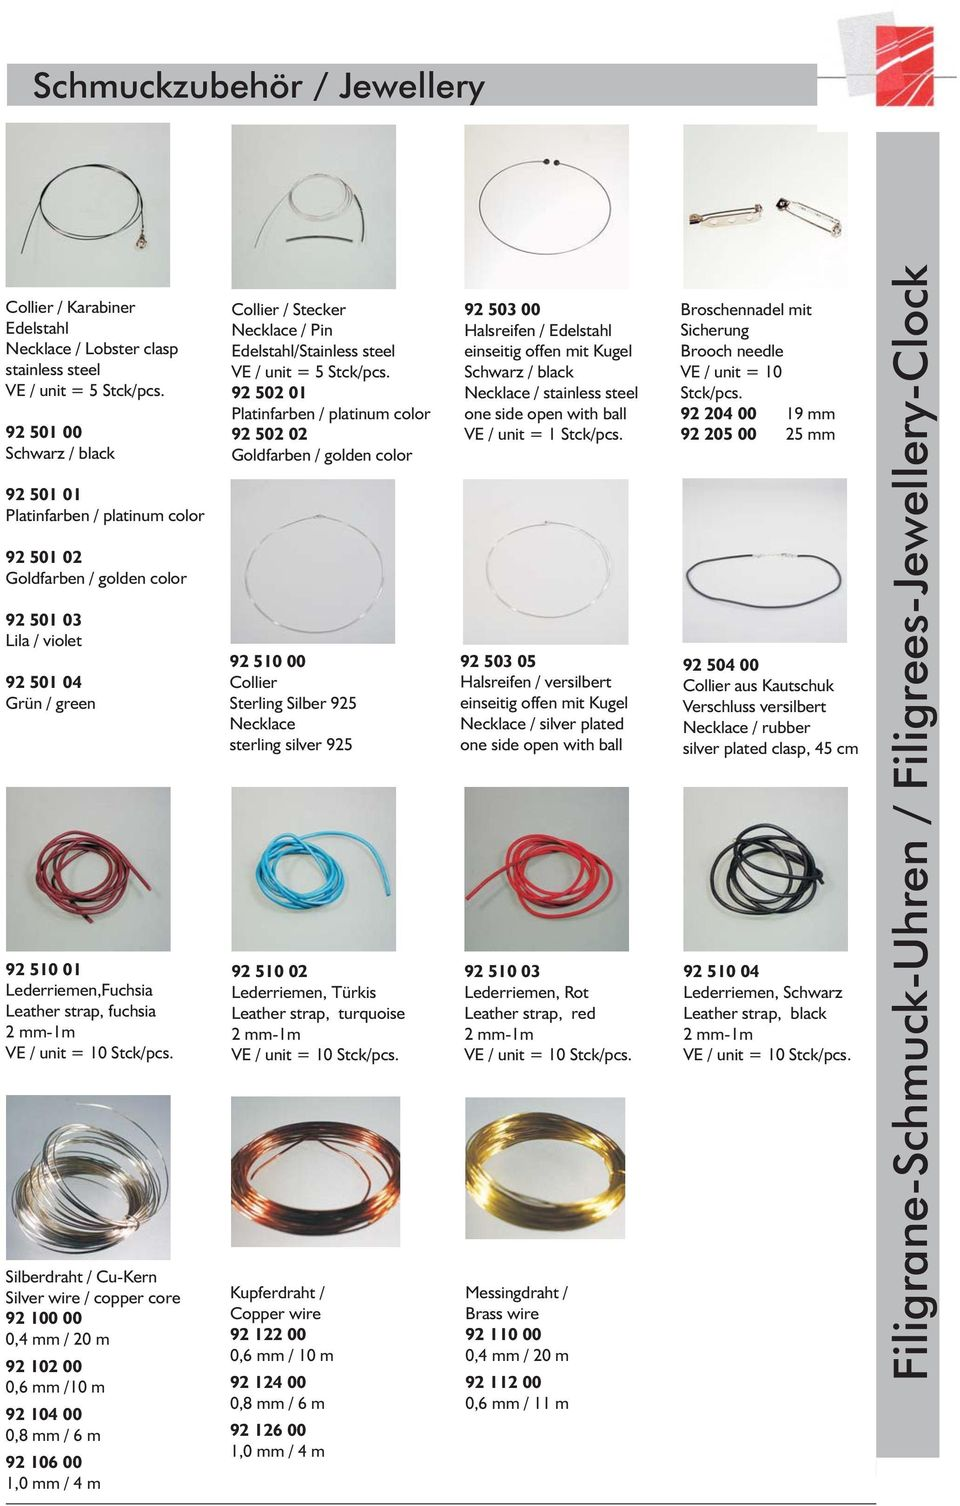 Cu-Kern Silver wire / copper core 92 100 00 0,4mm/20m 92 102 00 0,6 mm /10 m 92 104 00 0,8mm/6m 92 106 00 1,0mm/4m Collier / Stecker Necklace / Pin /Stainless steel VE / unit = 5 Stck/pcs.